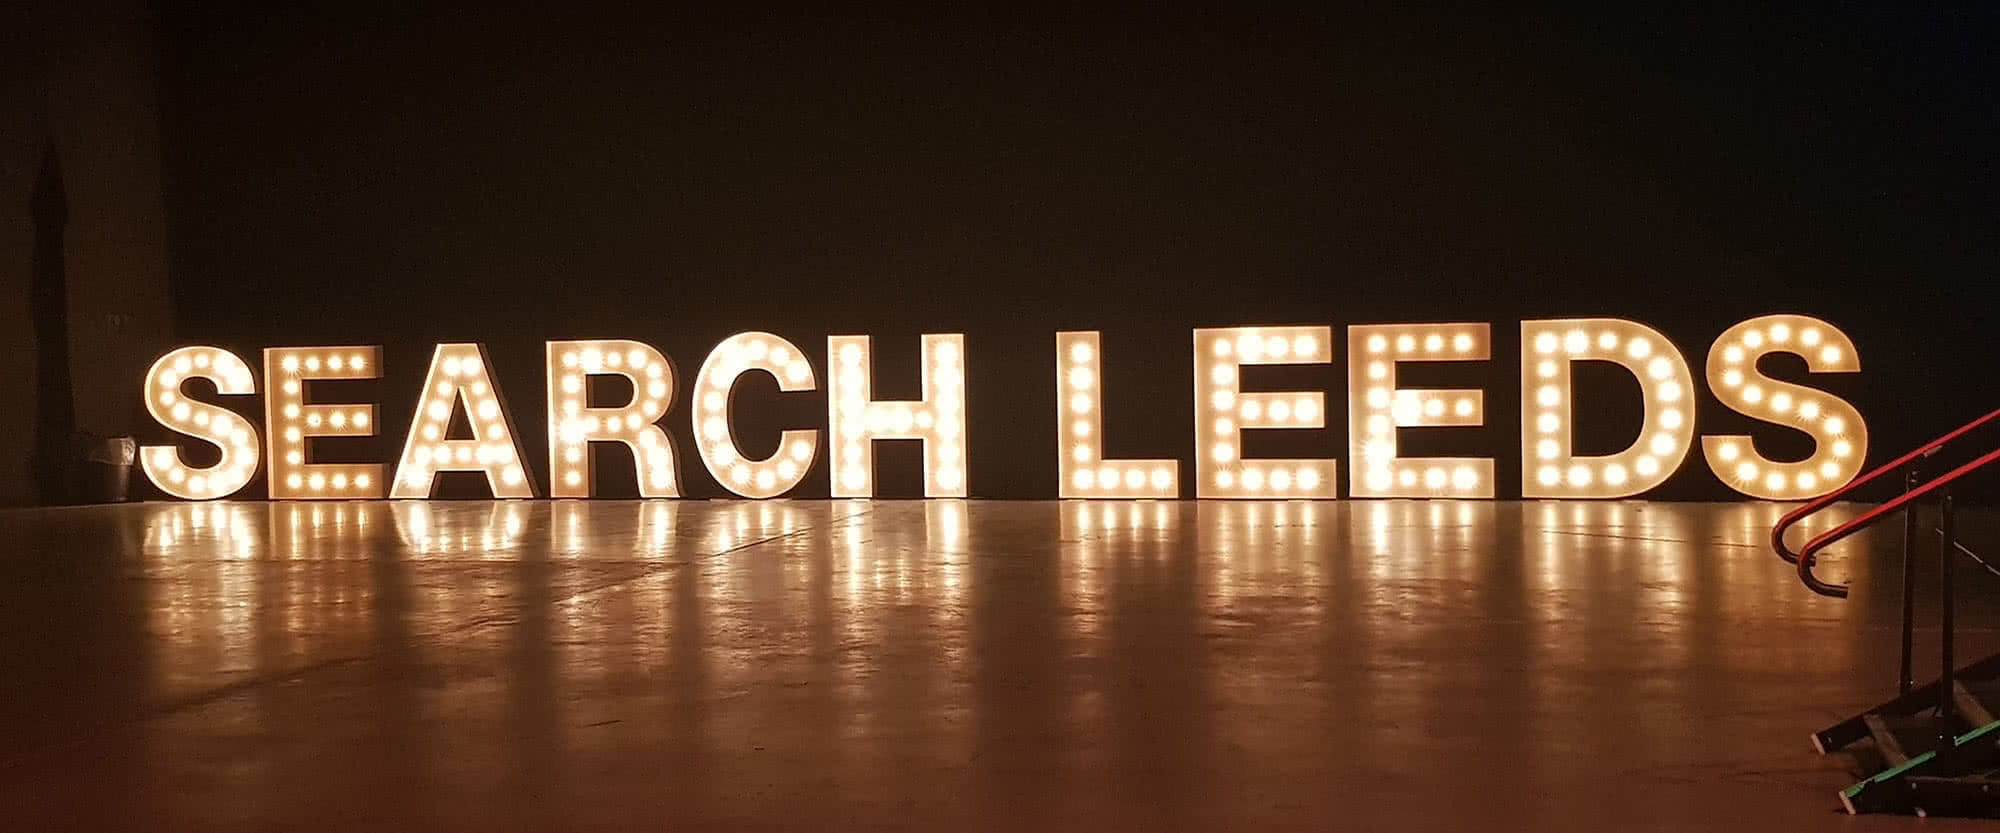 Search leeds giant letters